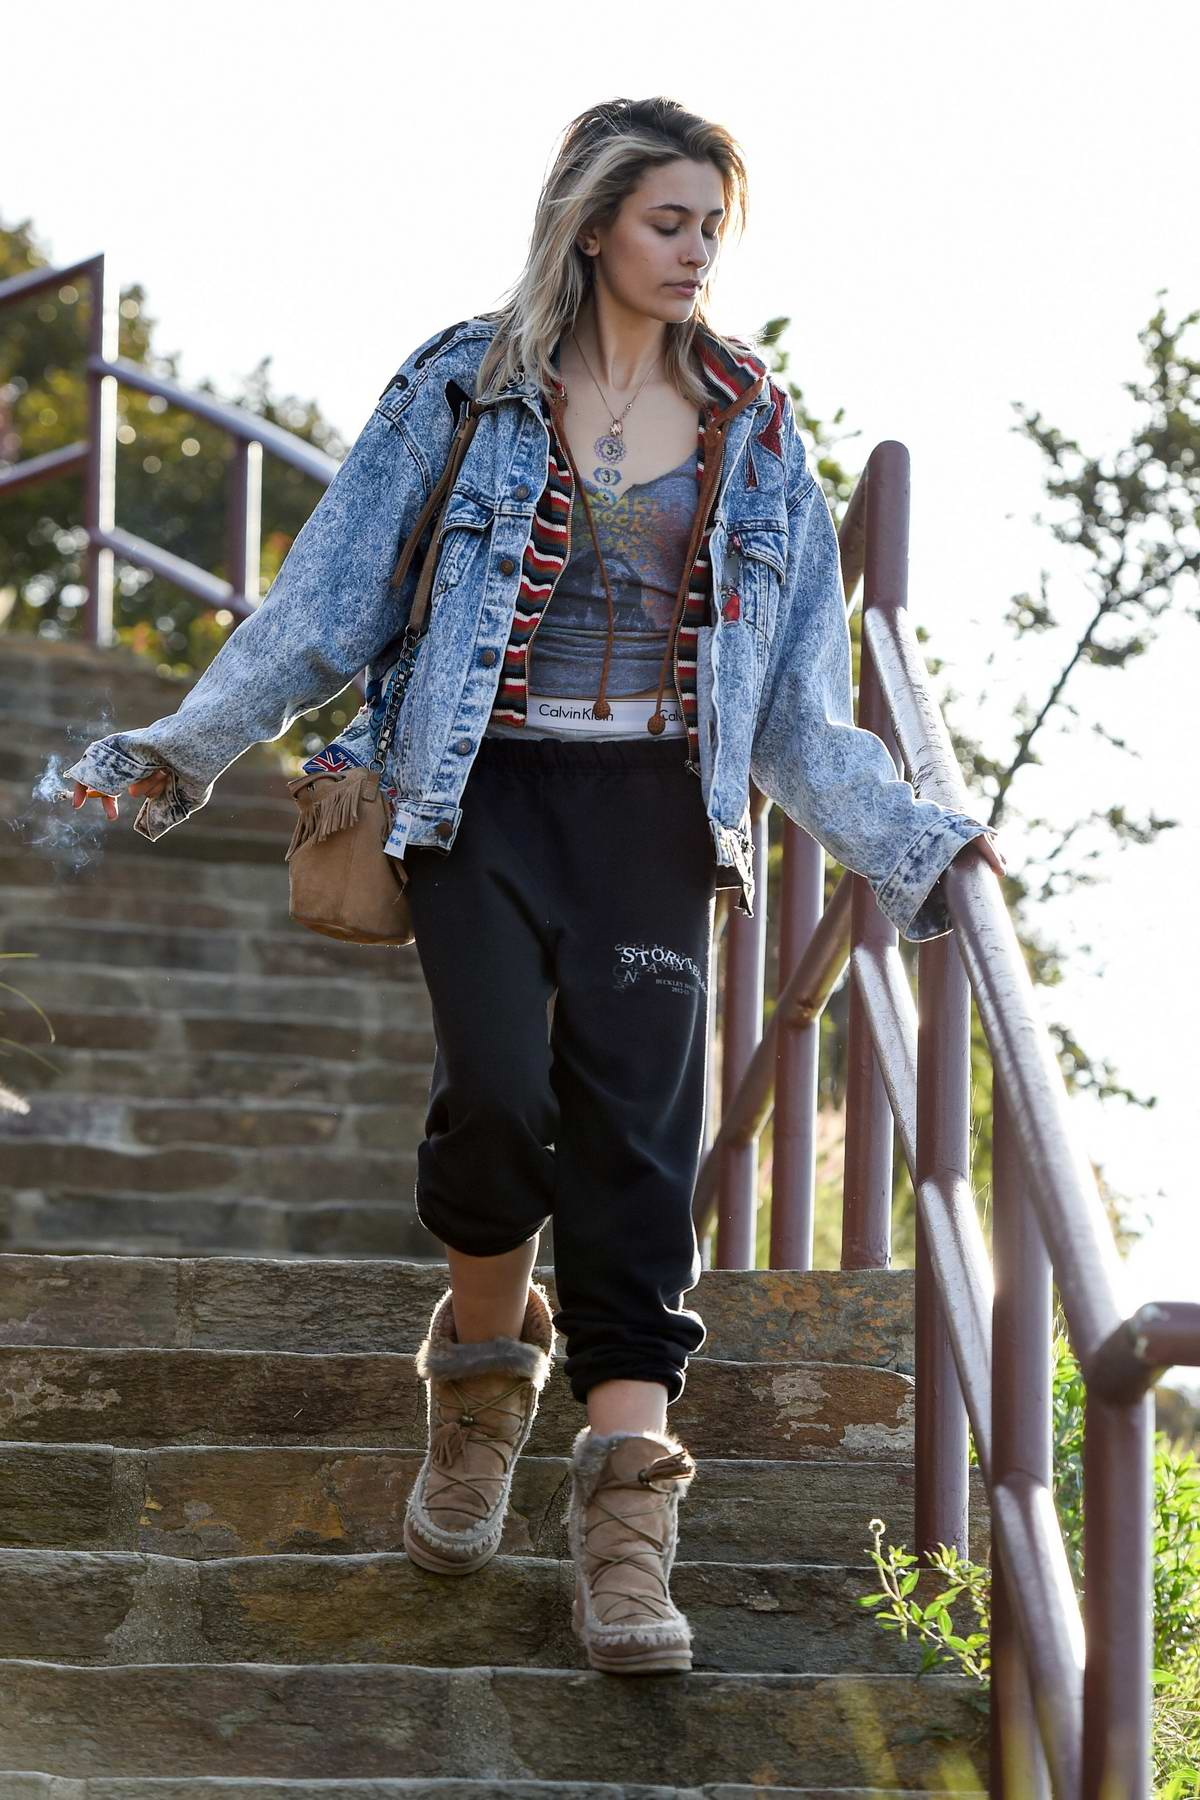 Paris Jackson shows off her quirky look while leaving the Mulholland Drive overlook above the Hollywood Bowl in Los Angeles